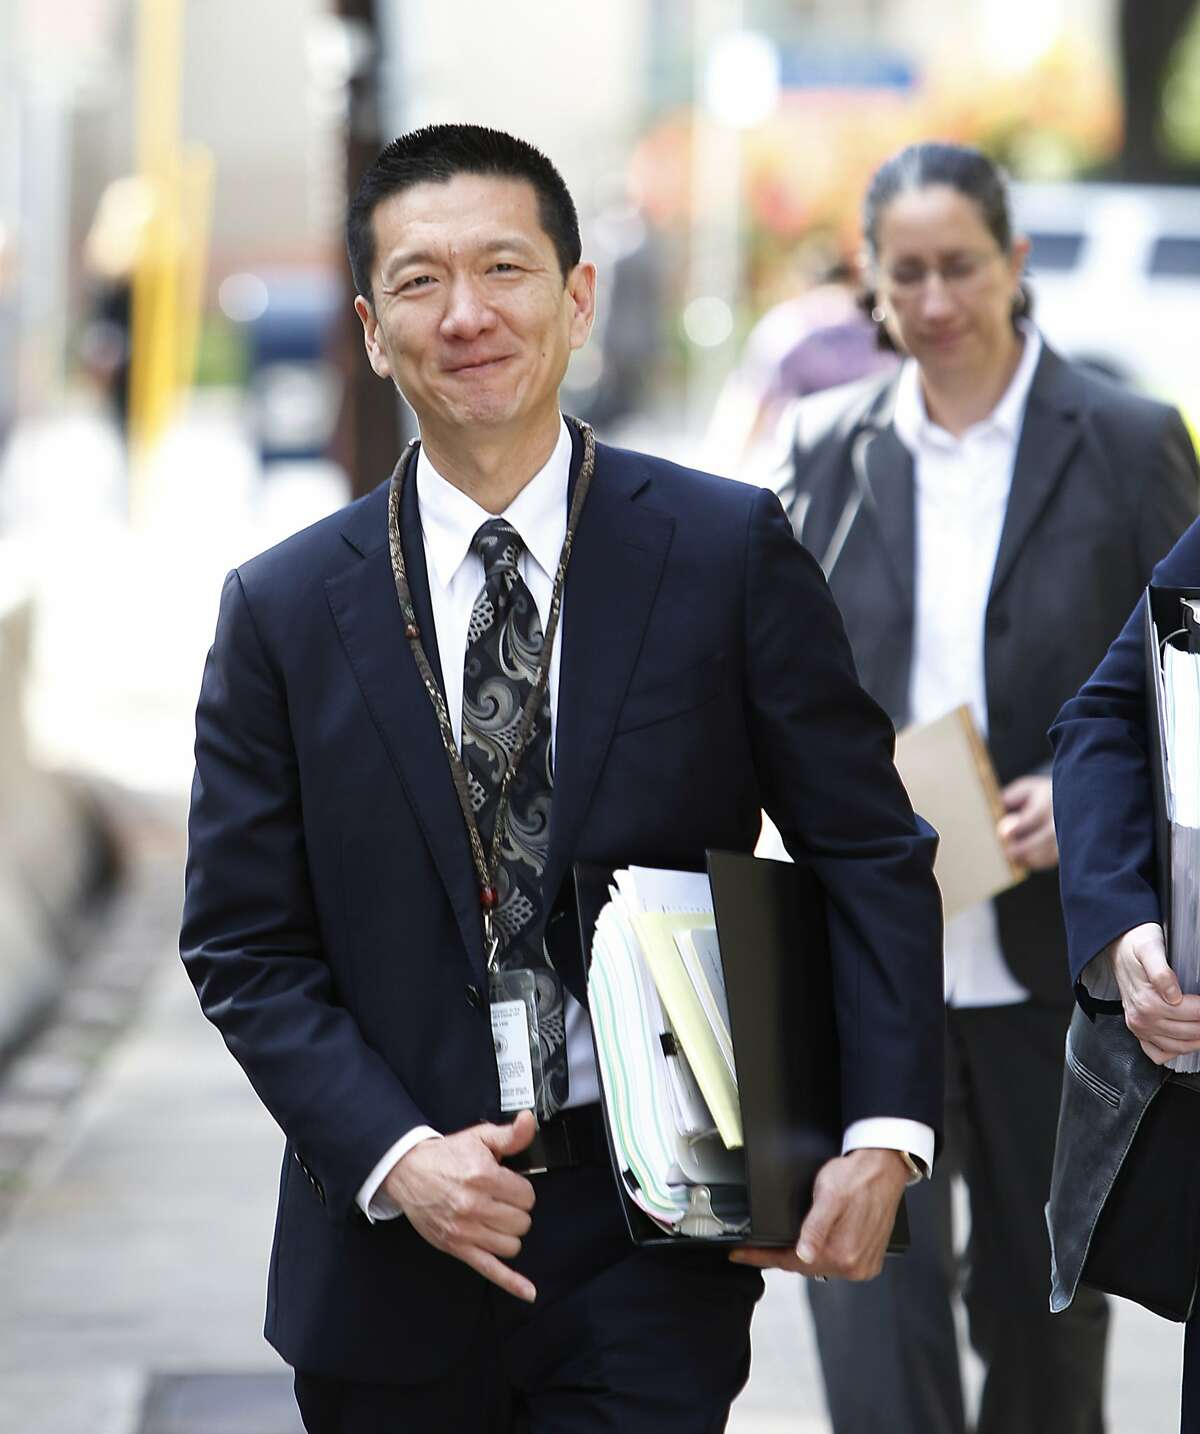 Hawaii Attorney General Douglas Chin flashes a Hawaii shaka before entering federal court, Wednesday, March 15, 2107, in Honolulu. Legal efforts to overturn President Donald Trump's travel ban will be held Wednesday in Hawaii. The lawsuit claims the ban harms Hawaii by highlighting the state's dependence on international travelers, its ethnic diversity and its welcoming reputation as the Aloha State. (AP Photo/Marco Garcia)